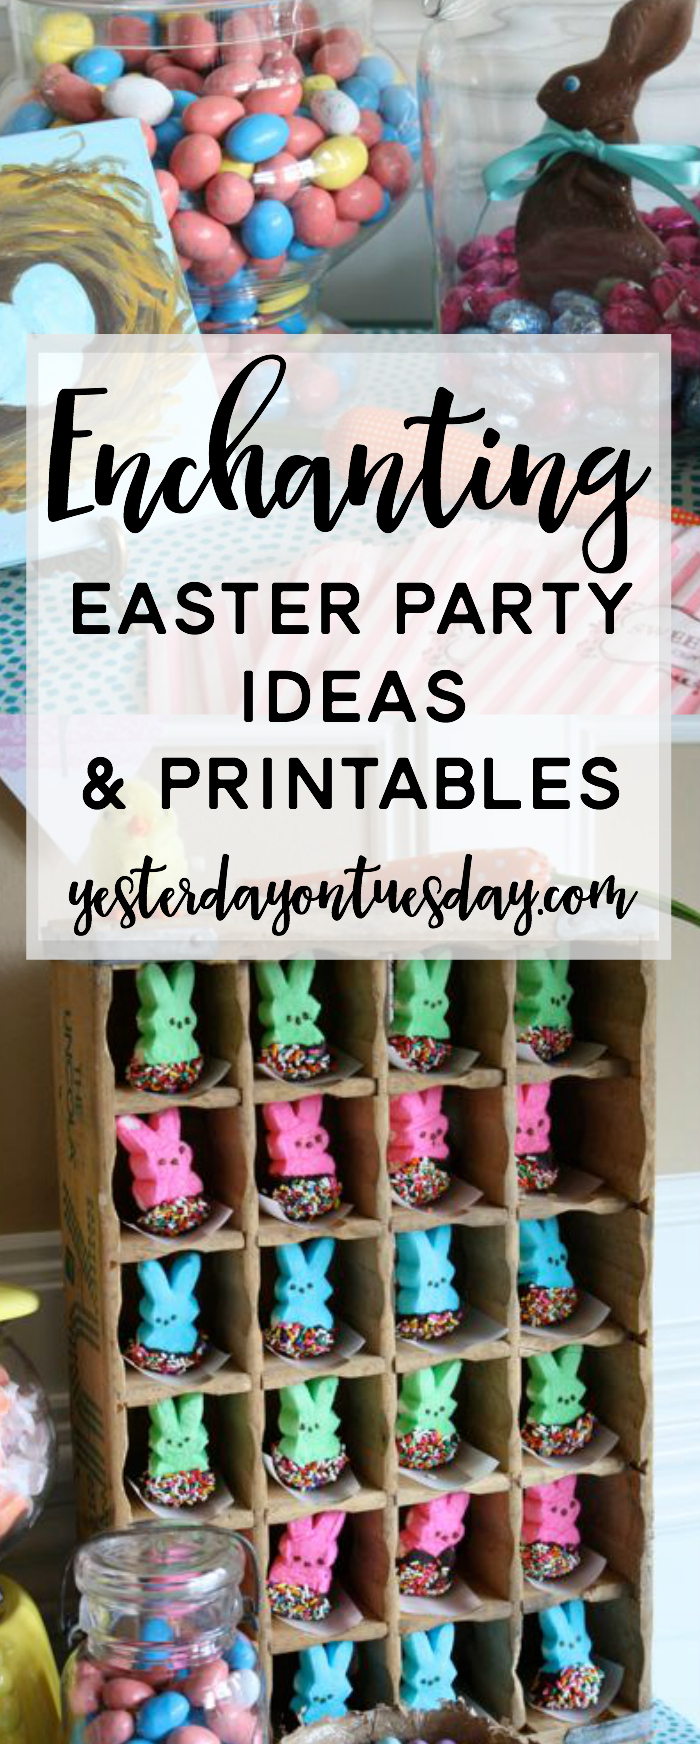 Enchanting Easter Party Ideas and Printables: Thrifty and chic ideas (including vintage finds) for using things you already have to decorate your home for Easter and an Easter Party! Fun Easter treat ideas too.